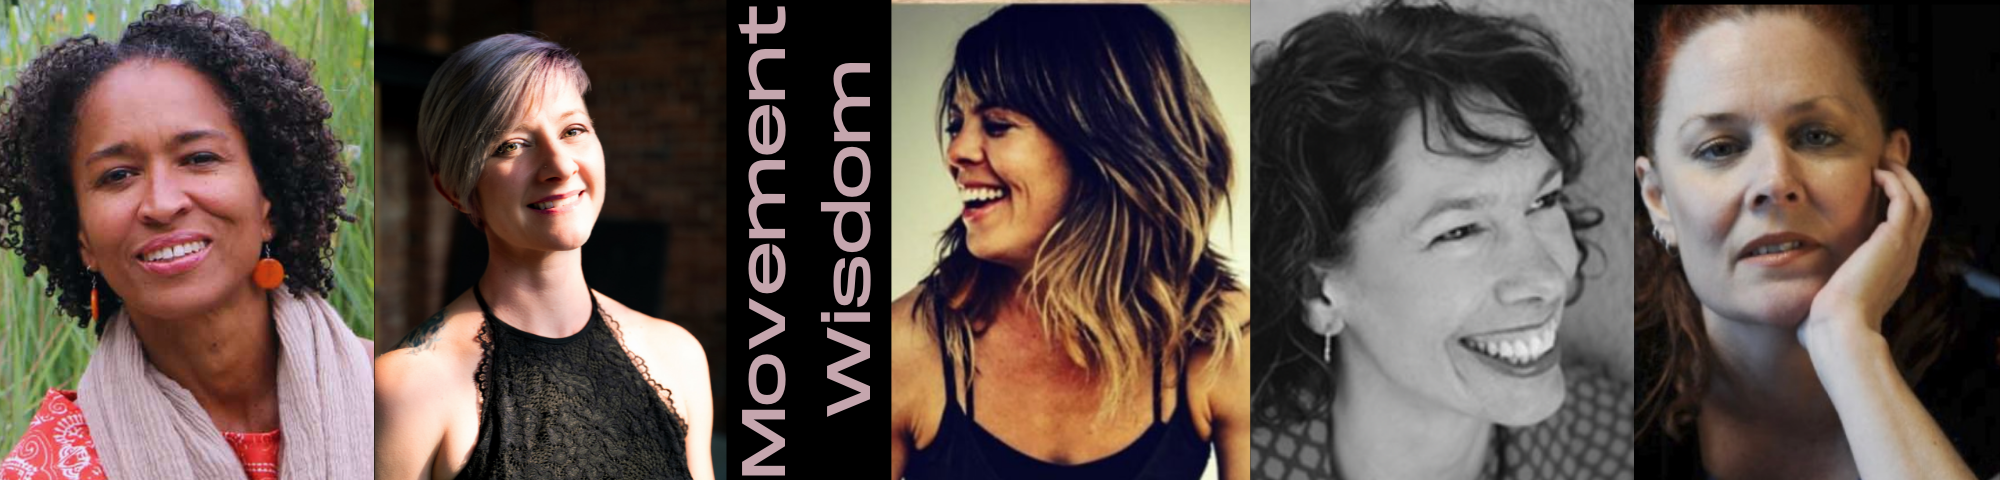 Guest Teaching - Movement Wisdom Advanced Contemporary at Block 1750 - Monthly